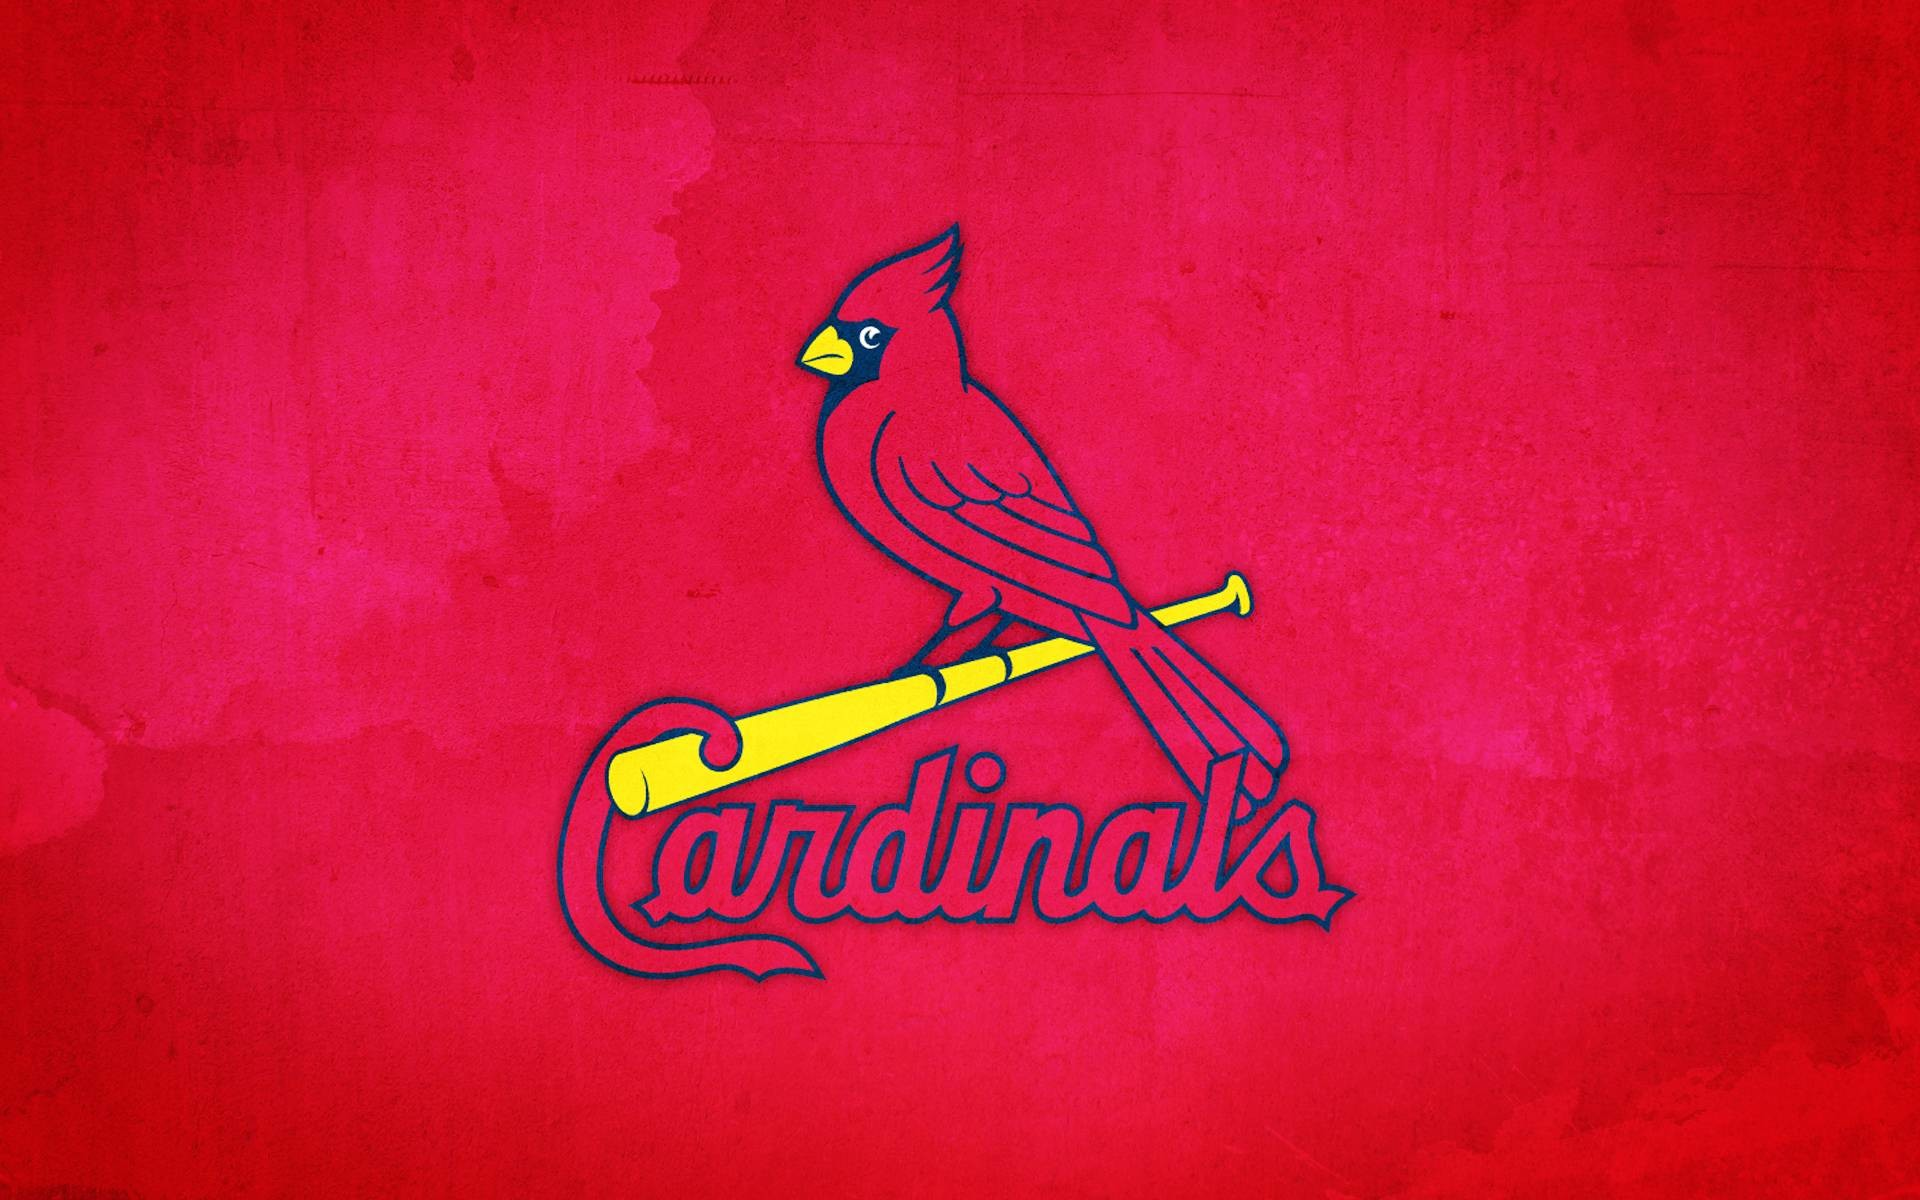 1920x1200 Cardinals Wallpapers - Full HD wallpaper search - page 2